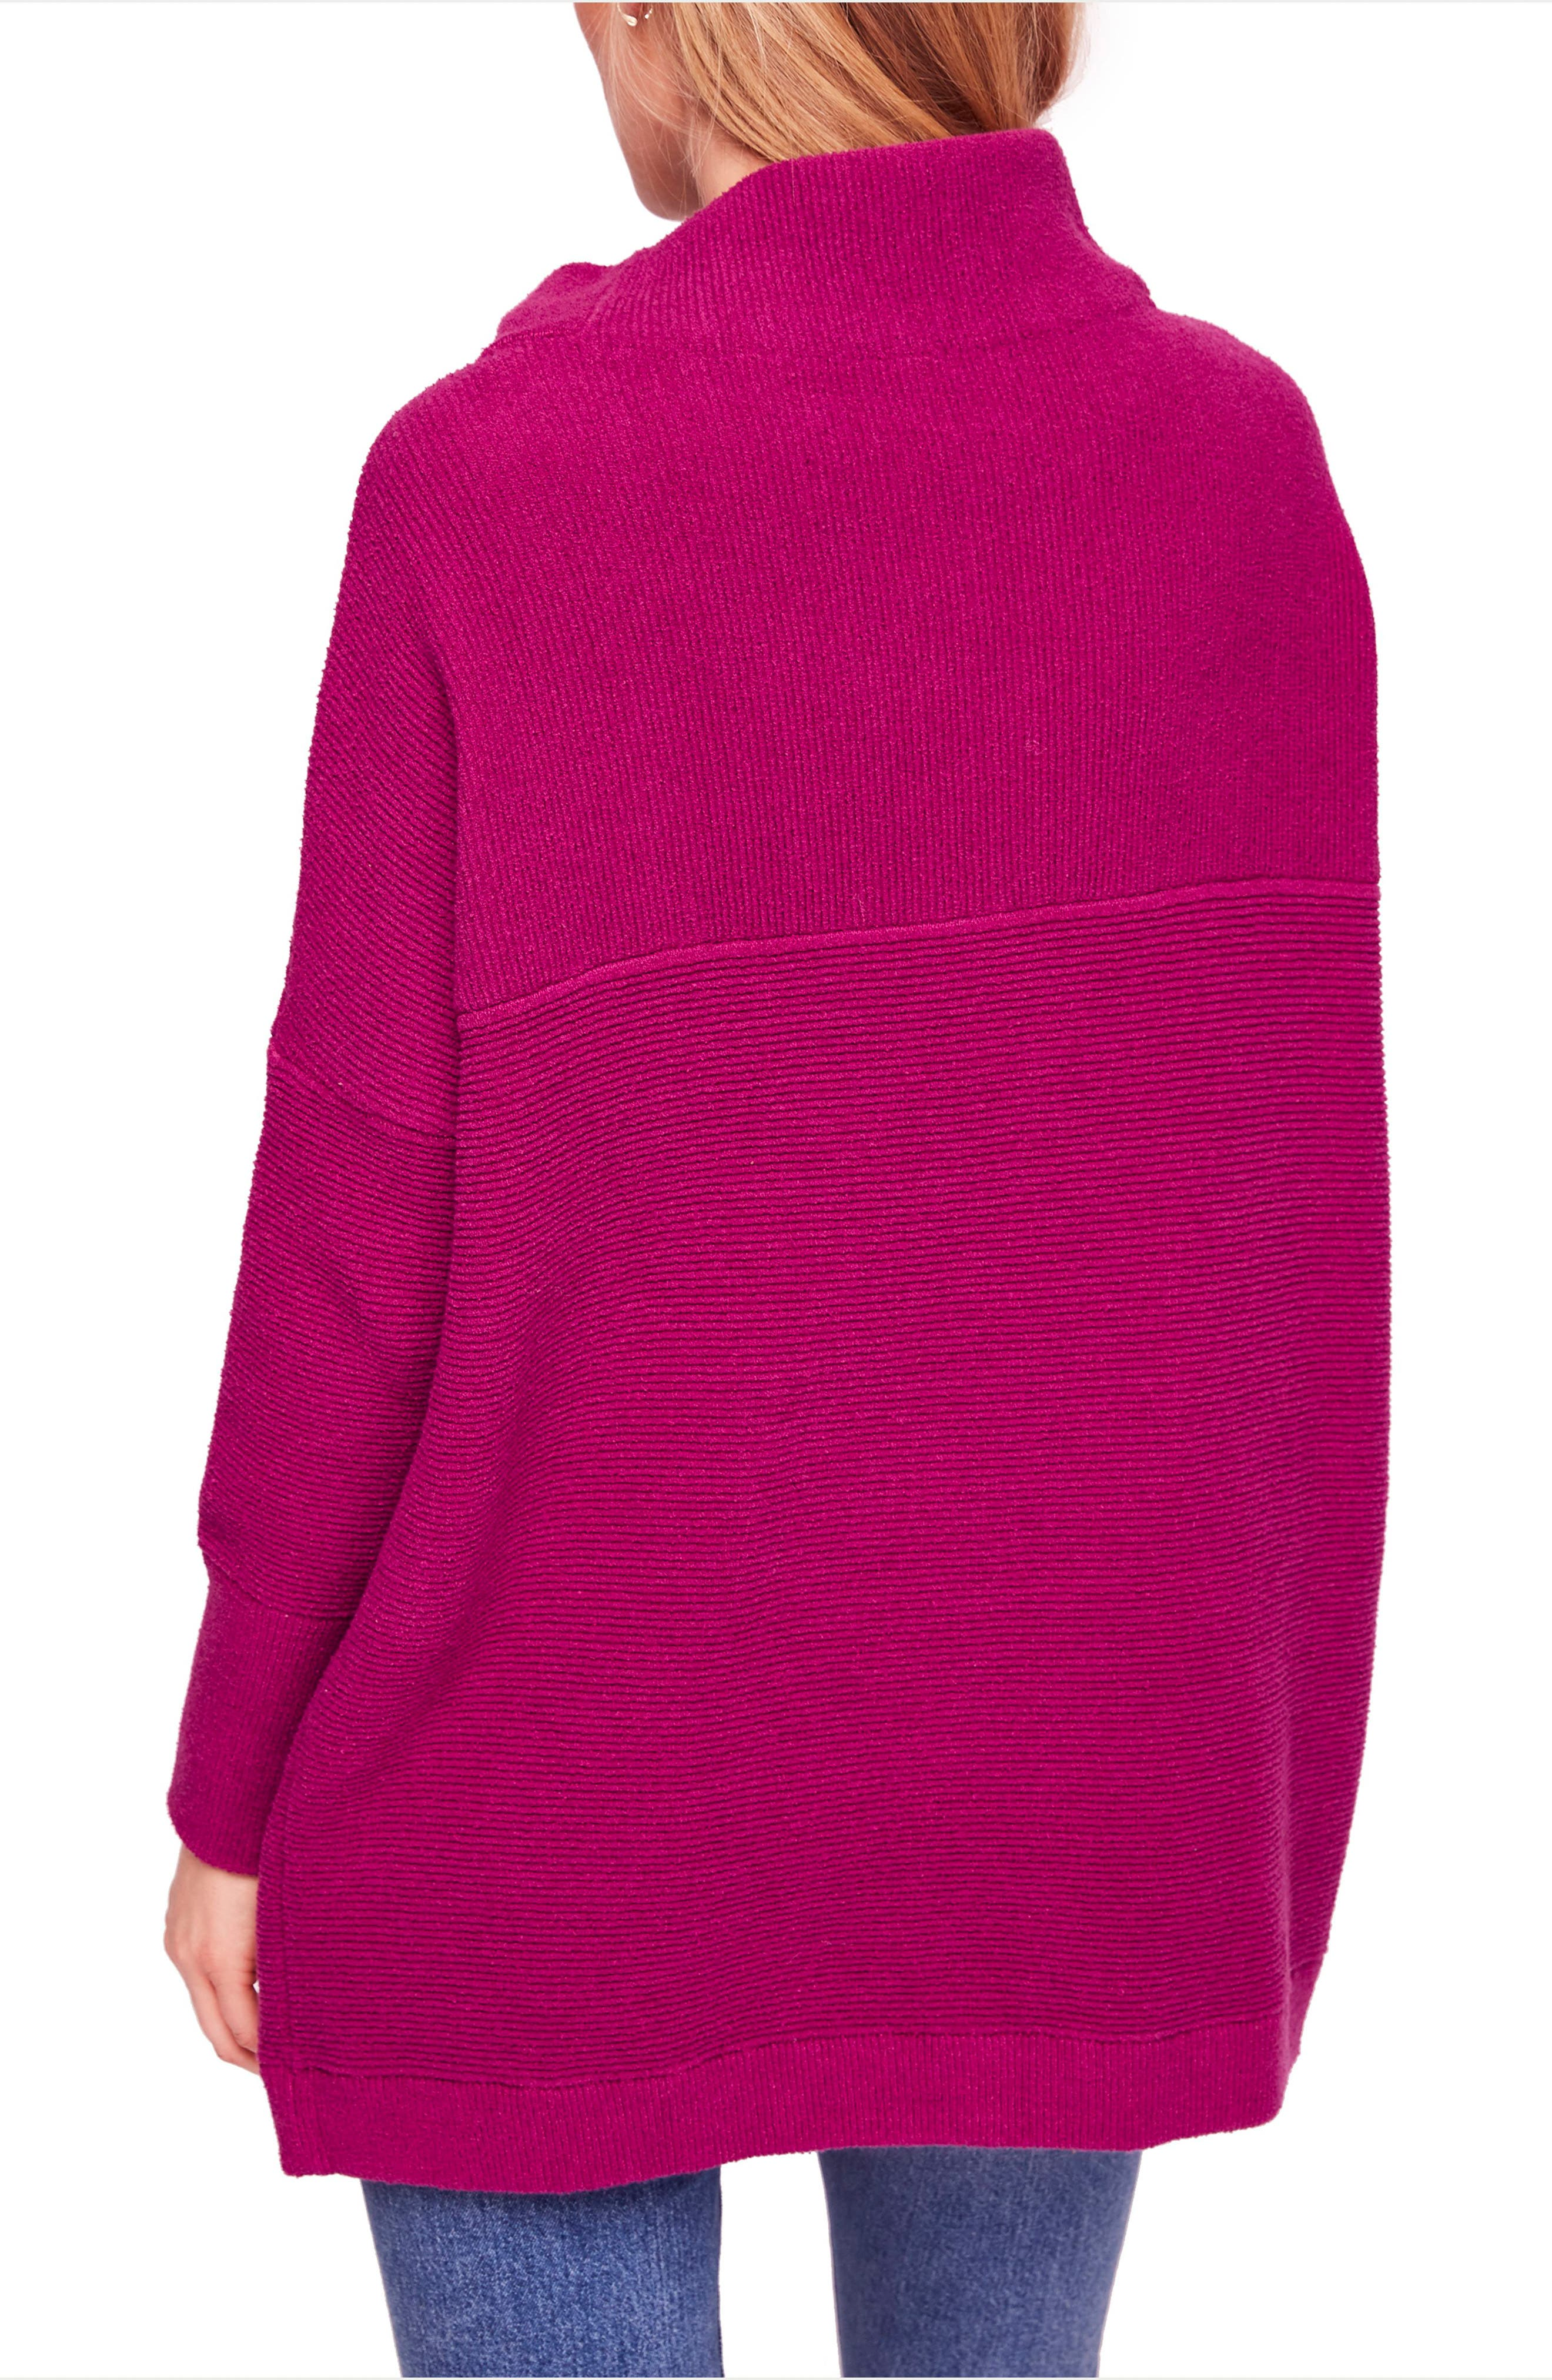 Ottoman Slouchy Tunic,                             Alternate thumbnail 2, color,                             931